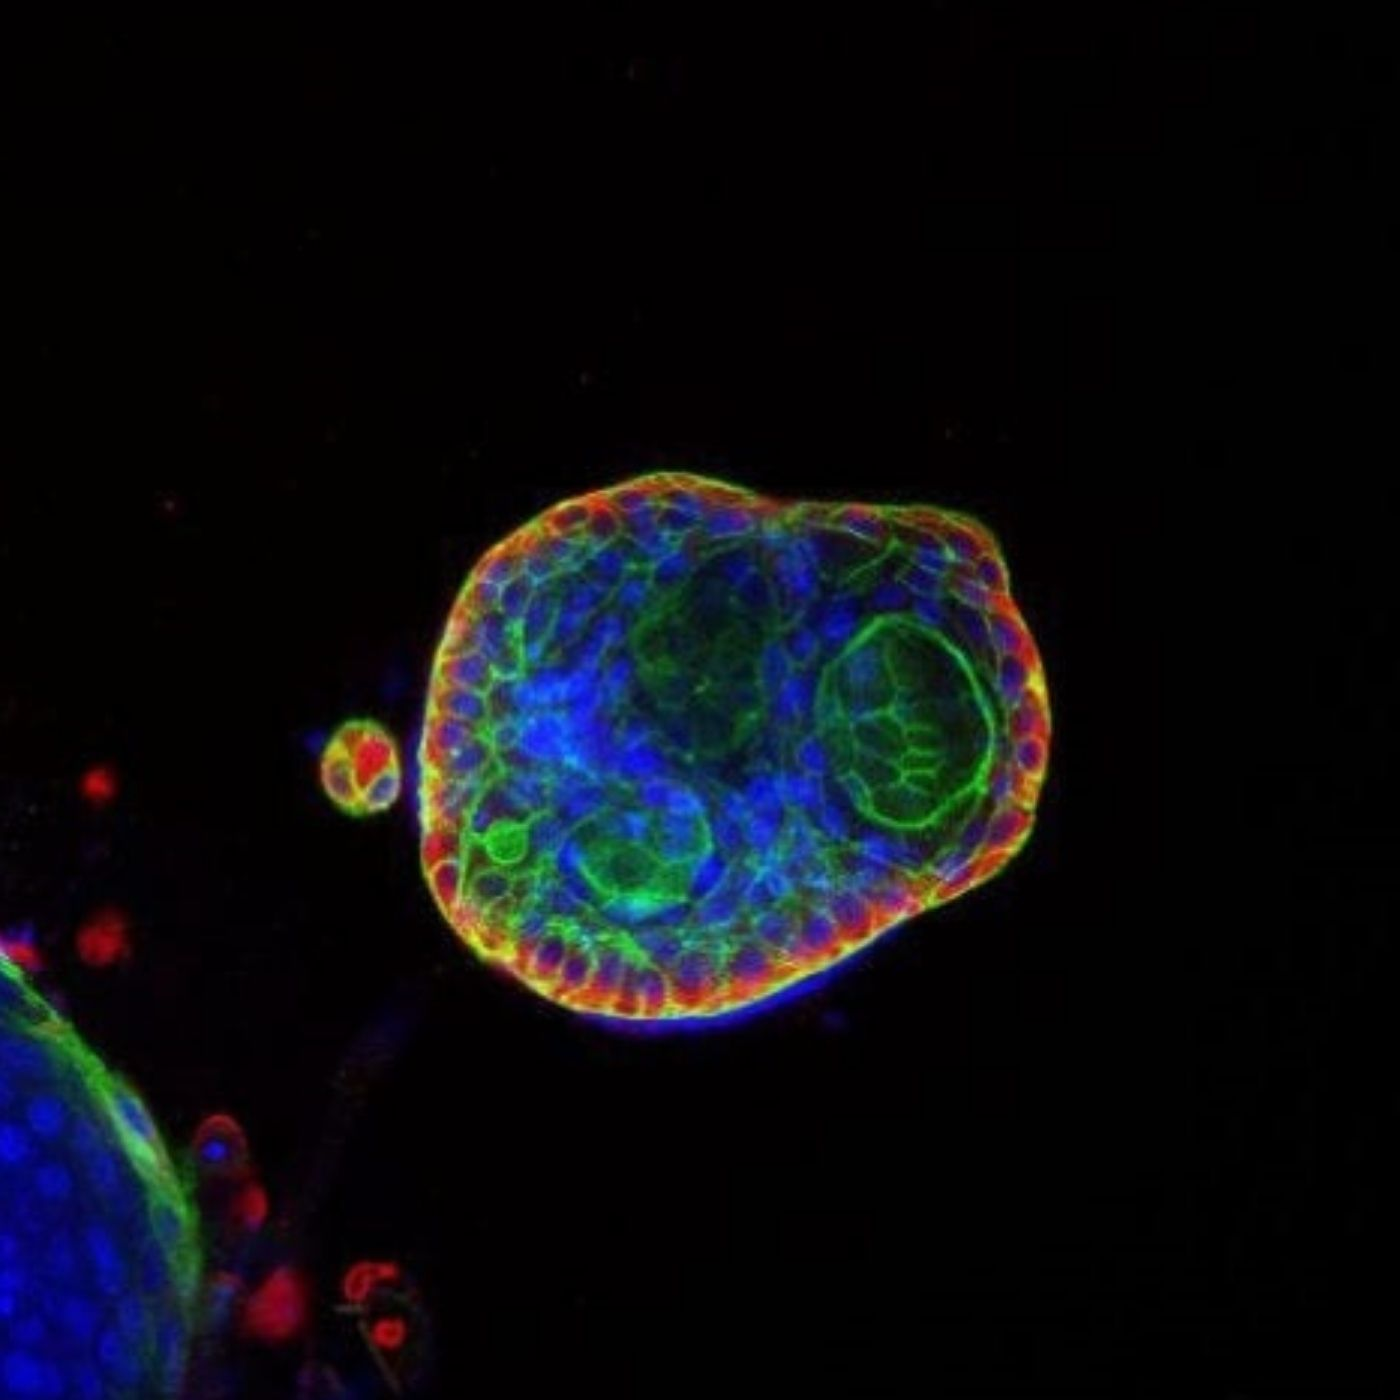 Organoids: advancing drug discovery and cancer research